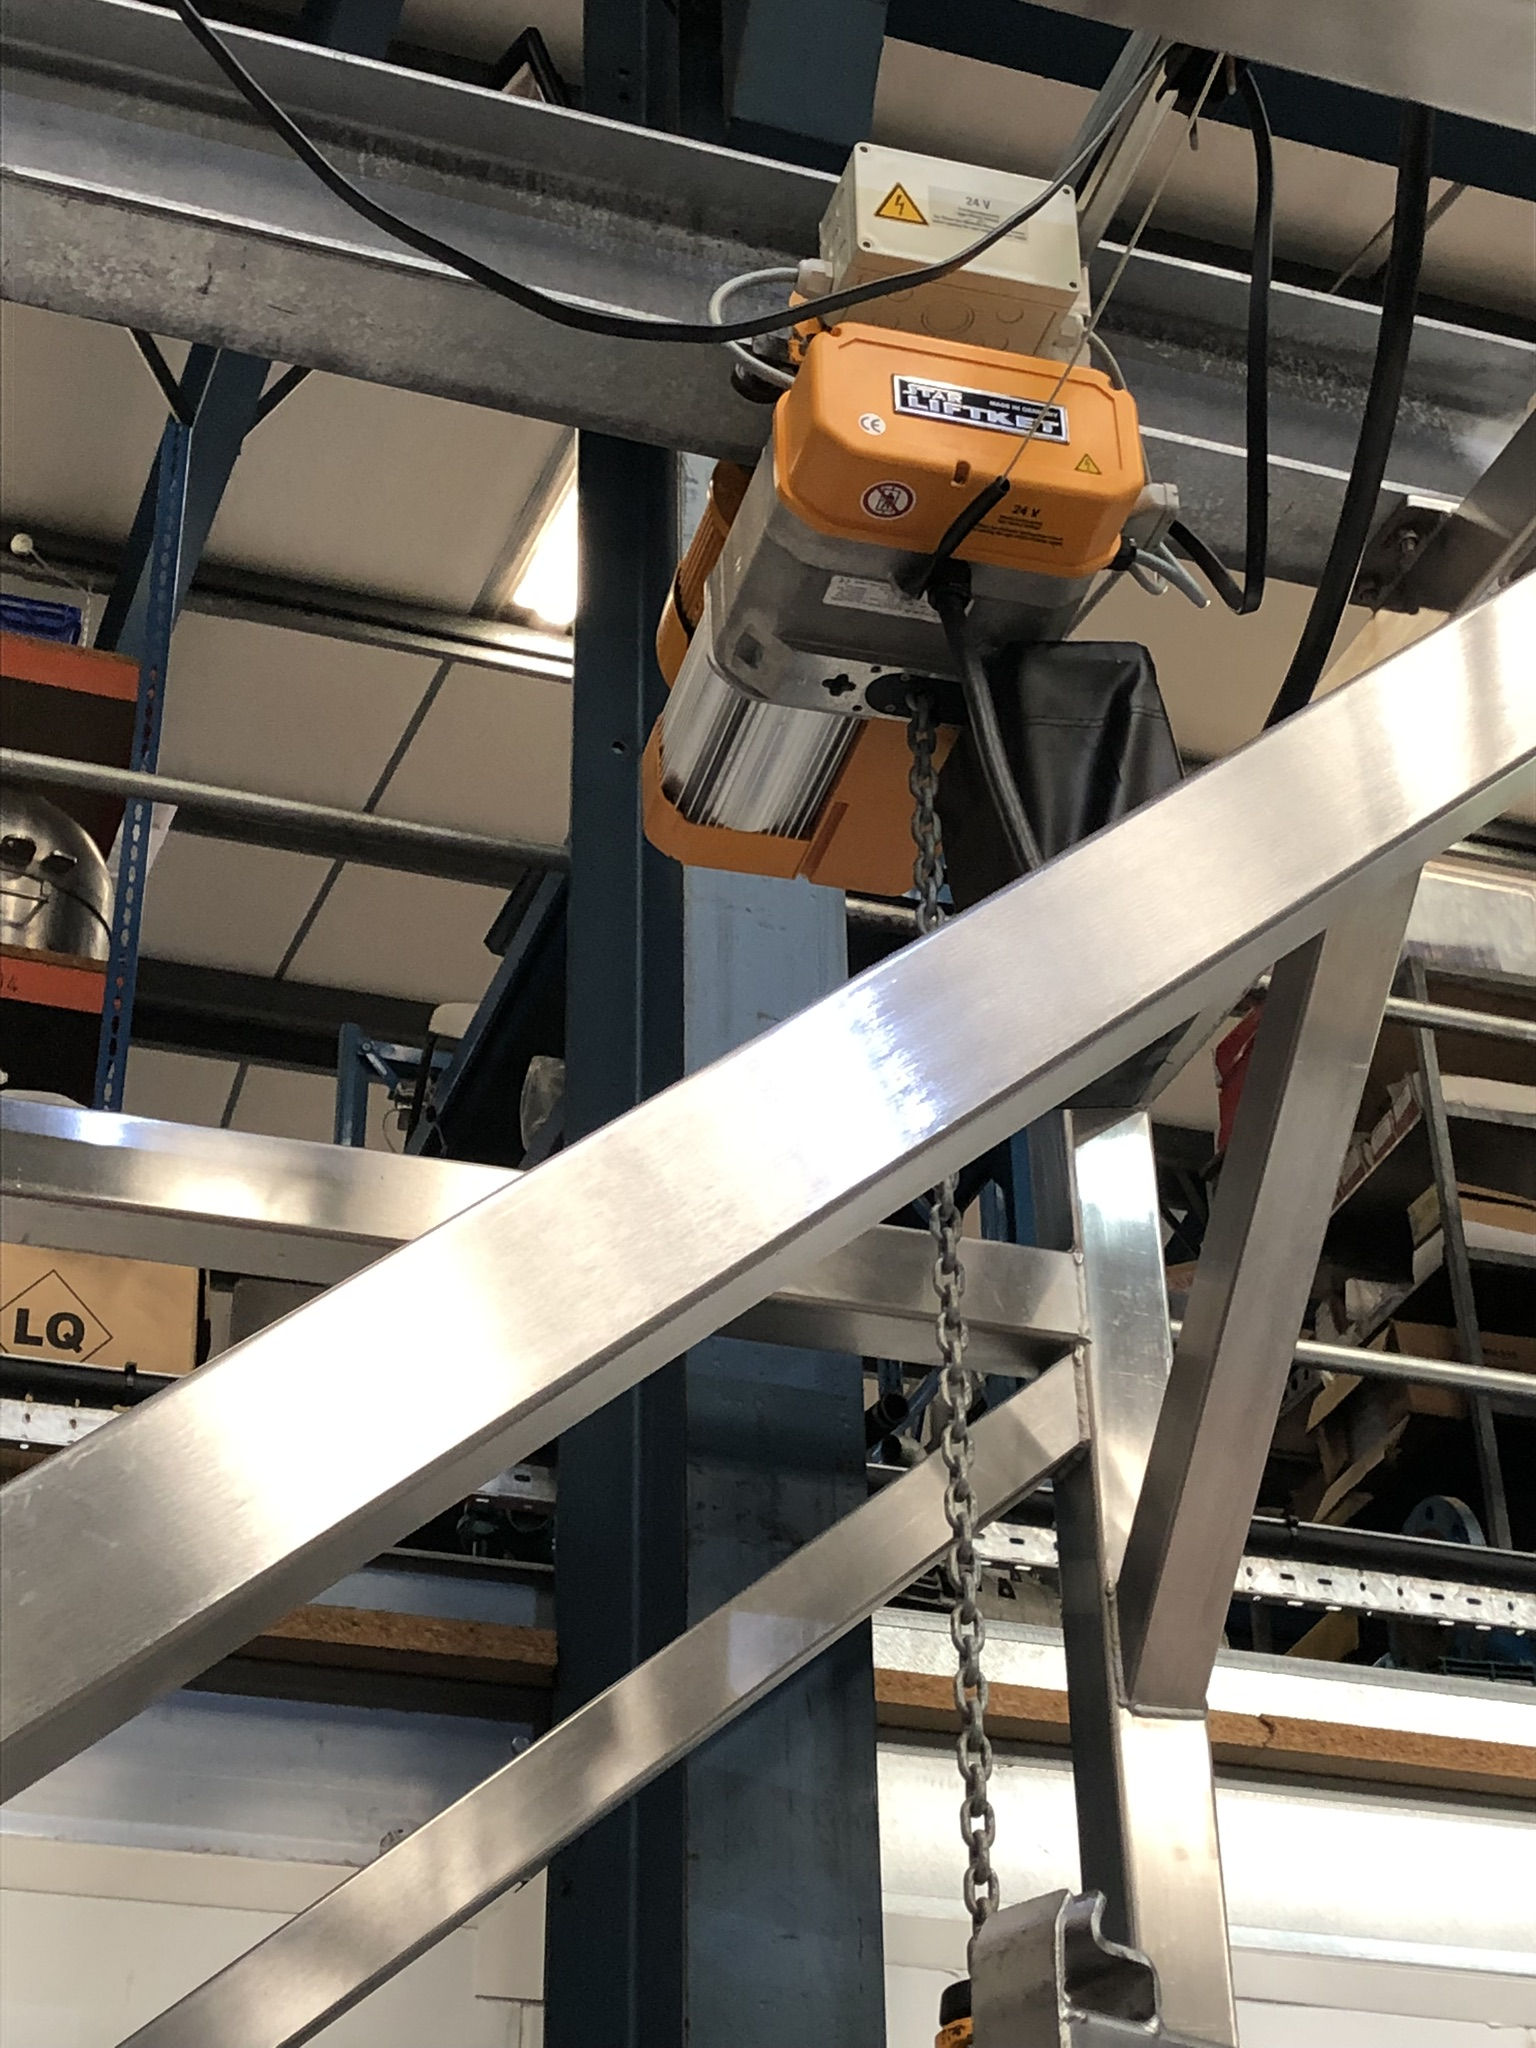 Guttridge 1000KG BULK BAG UNLOADING SYSTEM, with Star Liftket electric chain hoist, lift out - Image 7 of 8